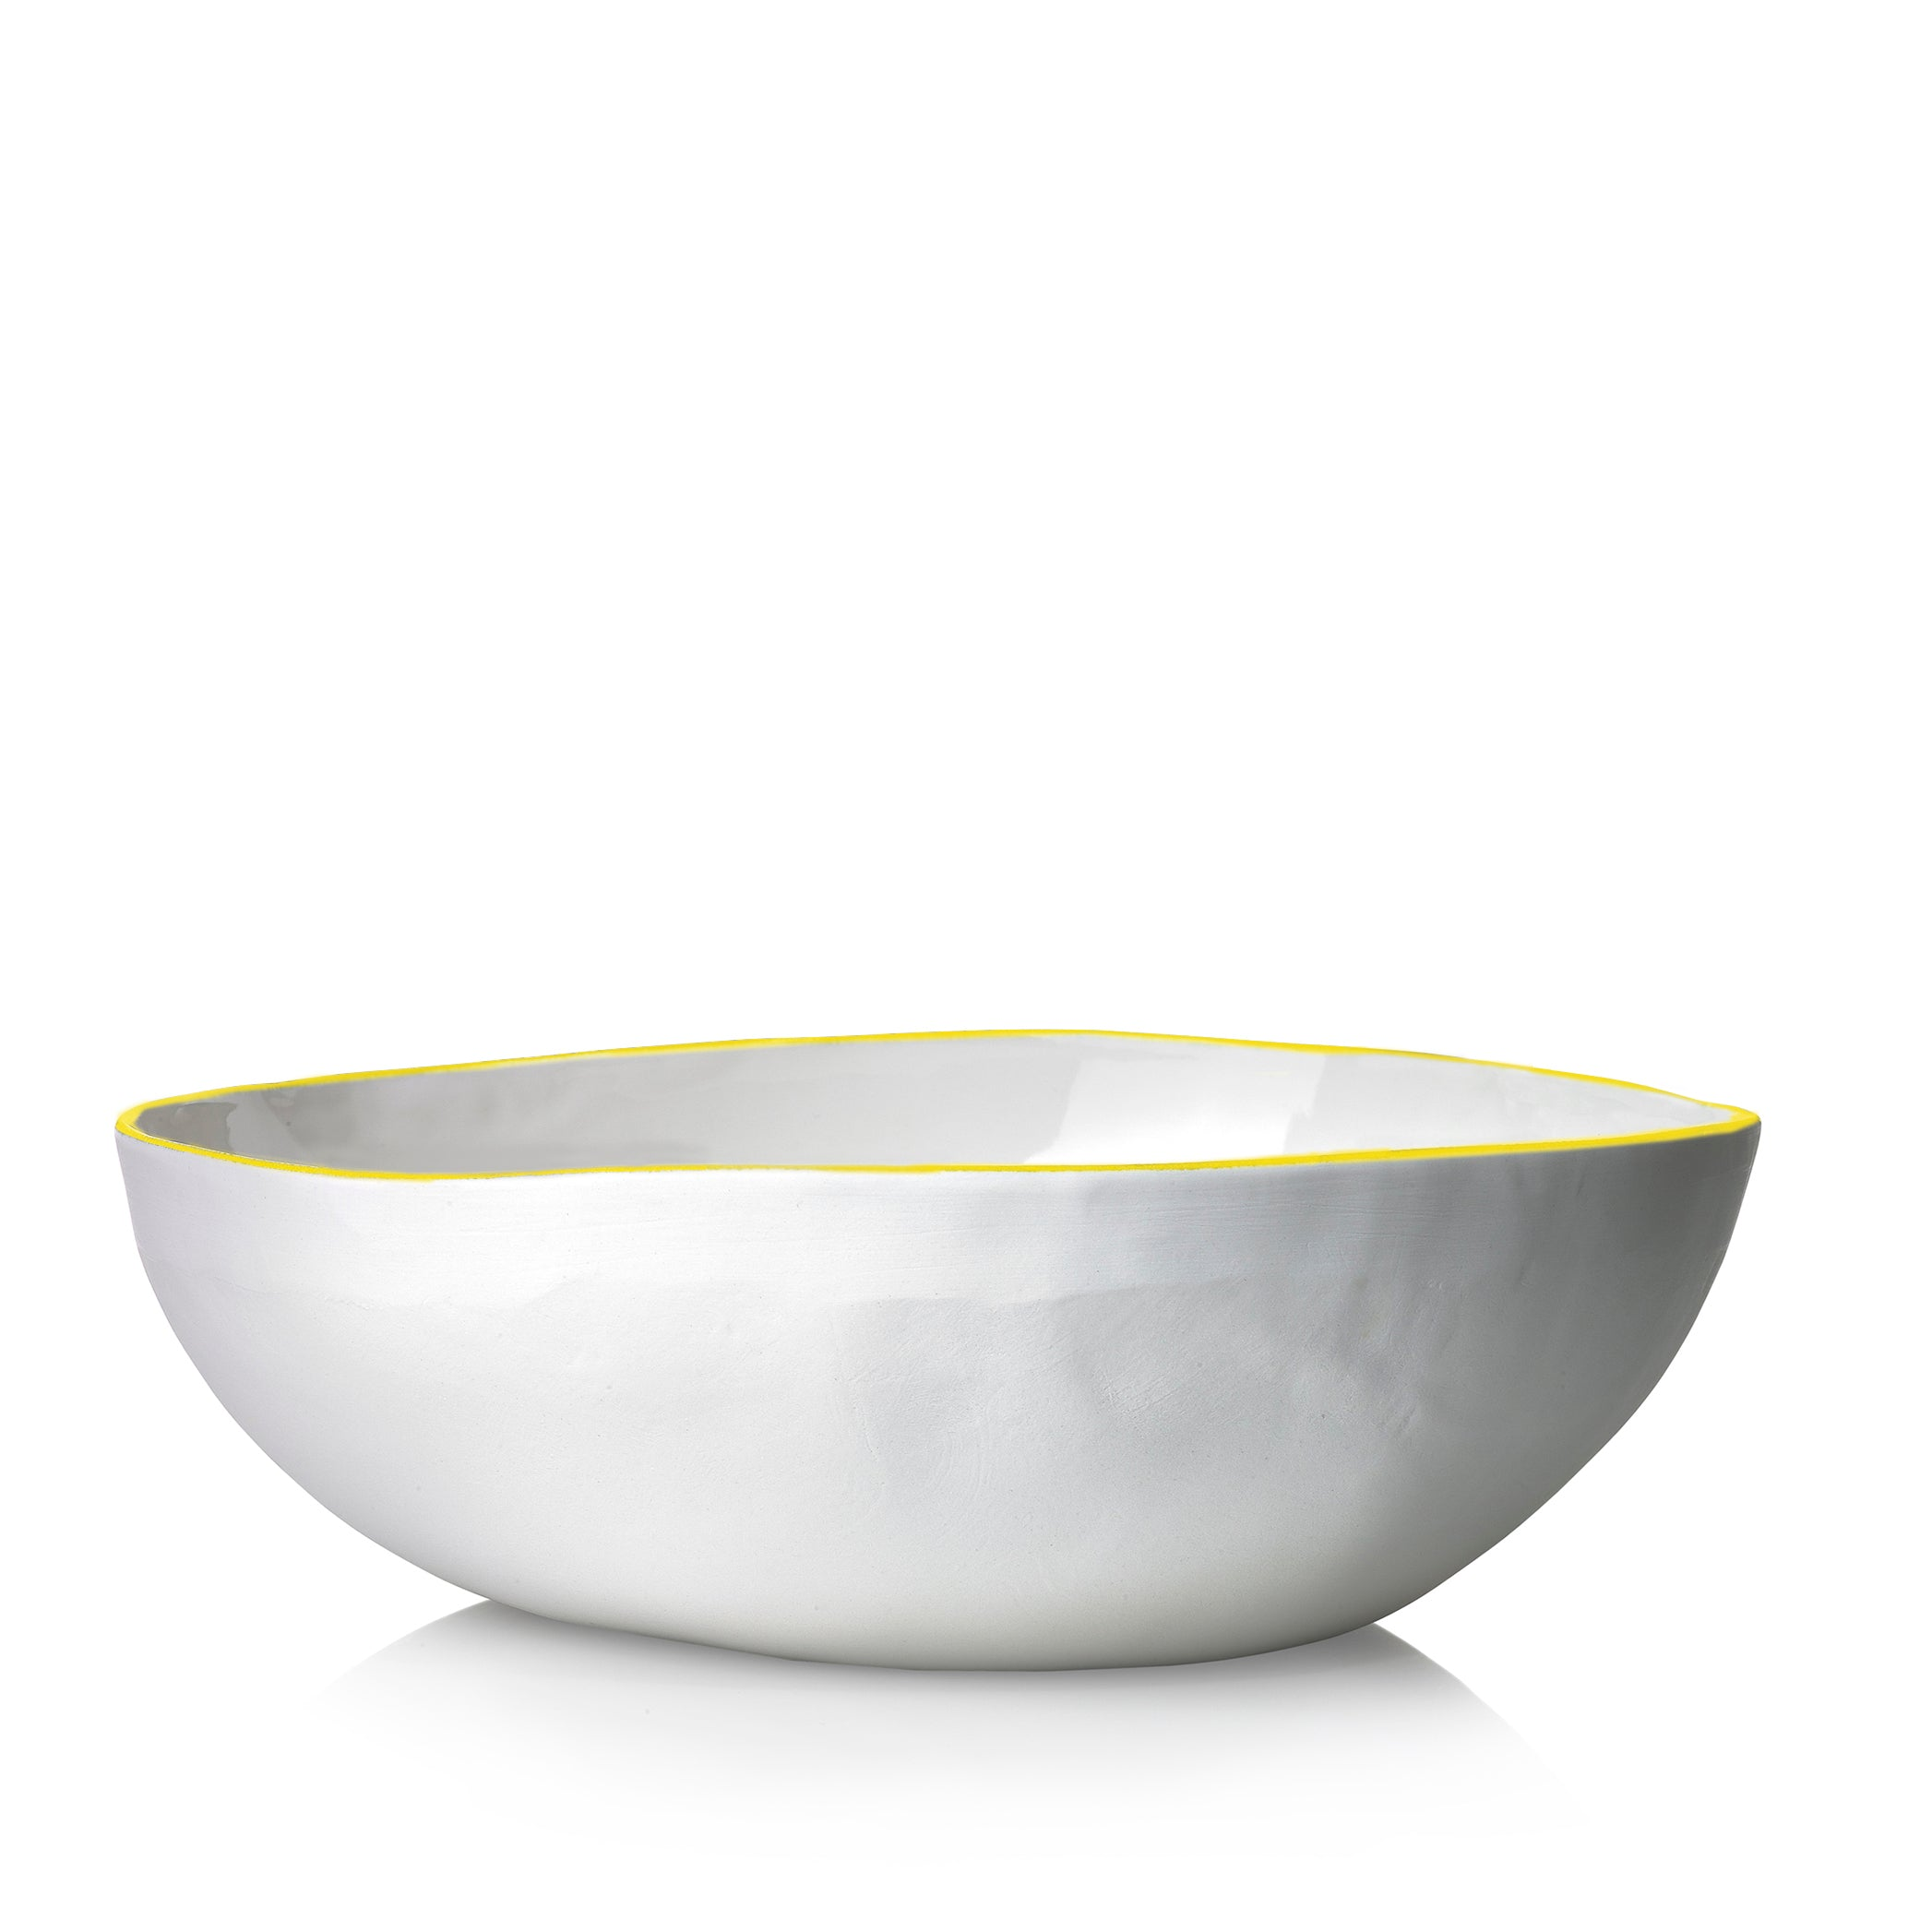 S&B Handmade 30cm Porcelain Medium Salad Bowl with Yellow Rim